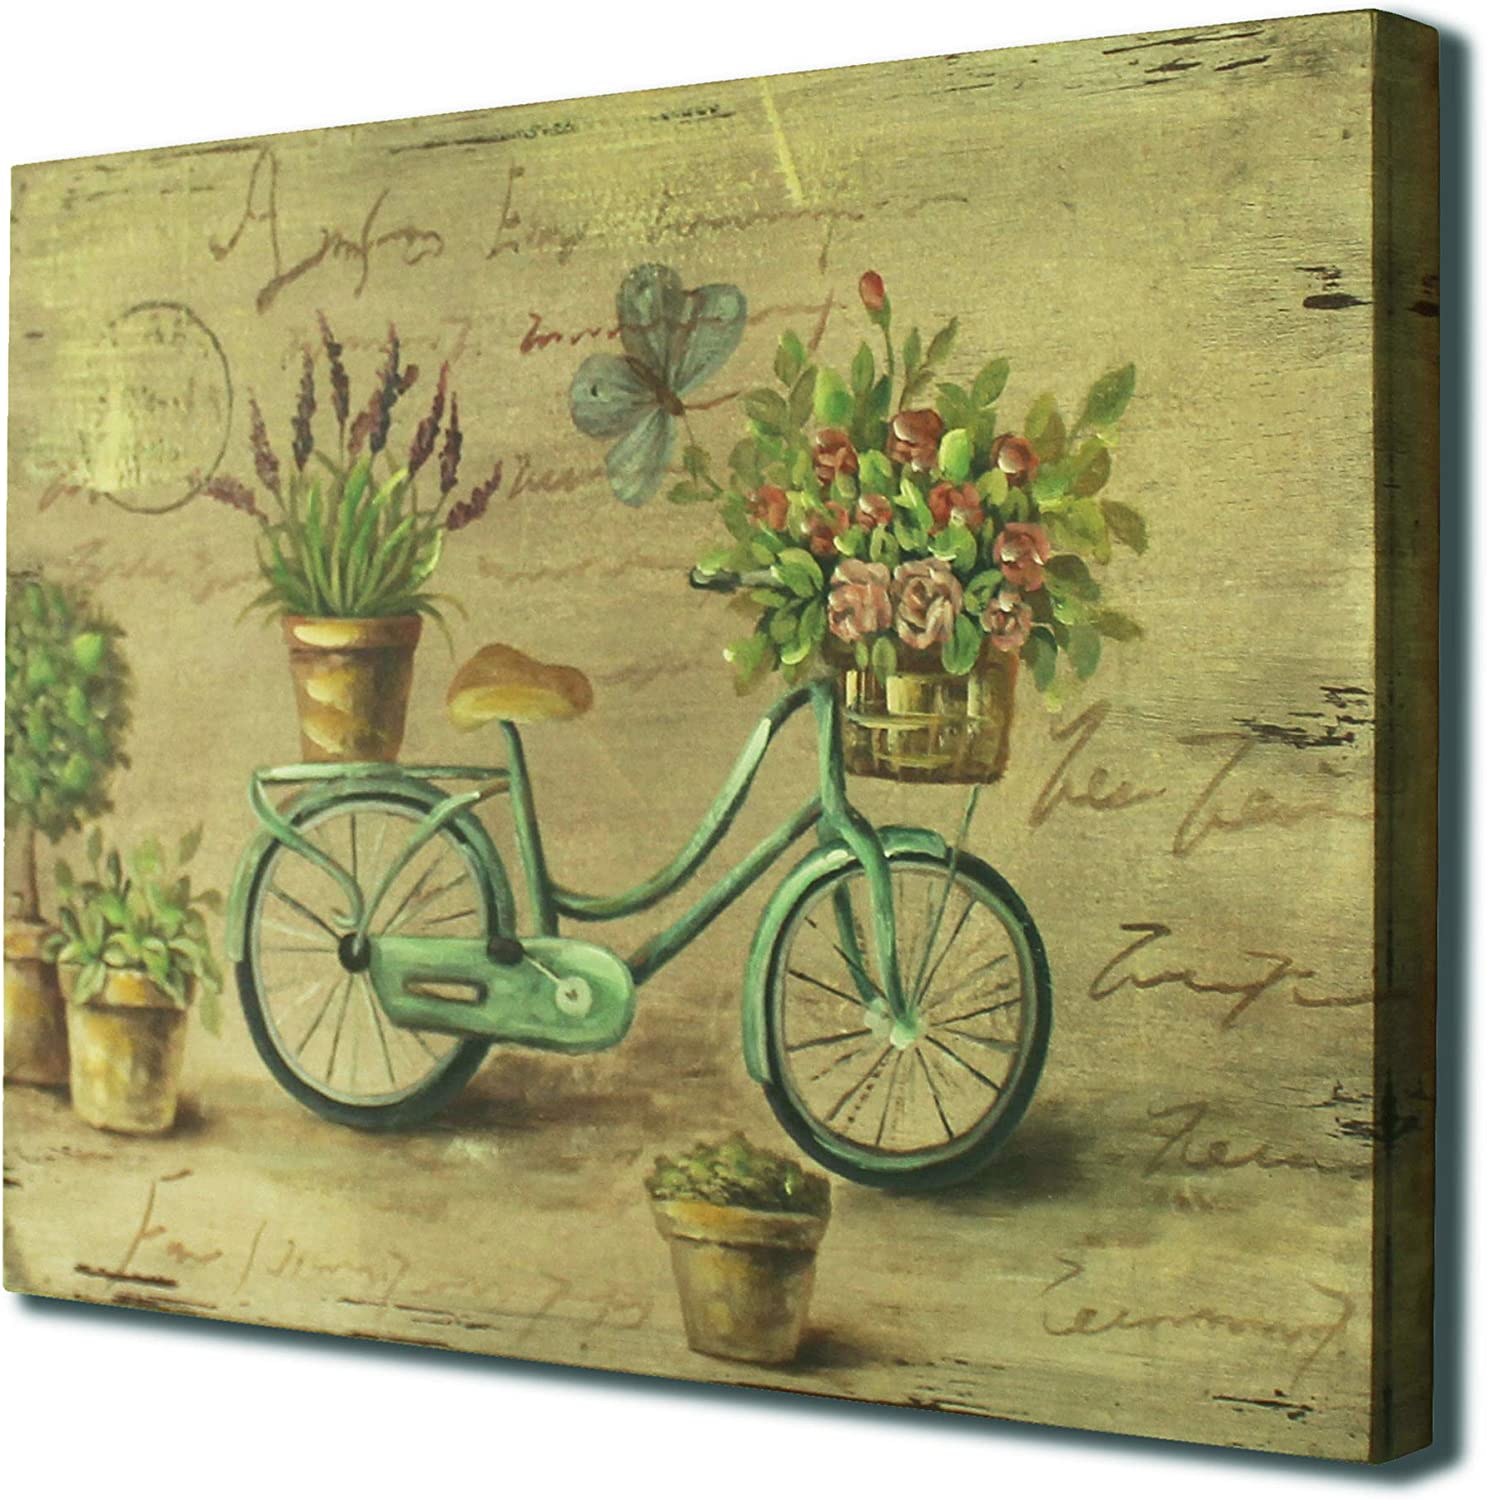 CVHOMEDECO 15 x 15 Bathroom Design Rustic Vintage Hand Painted Wooden Frame Wall Hanging 3D Painting Decoration Art